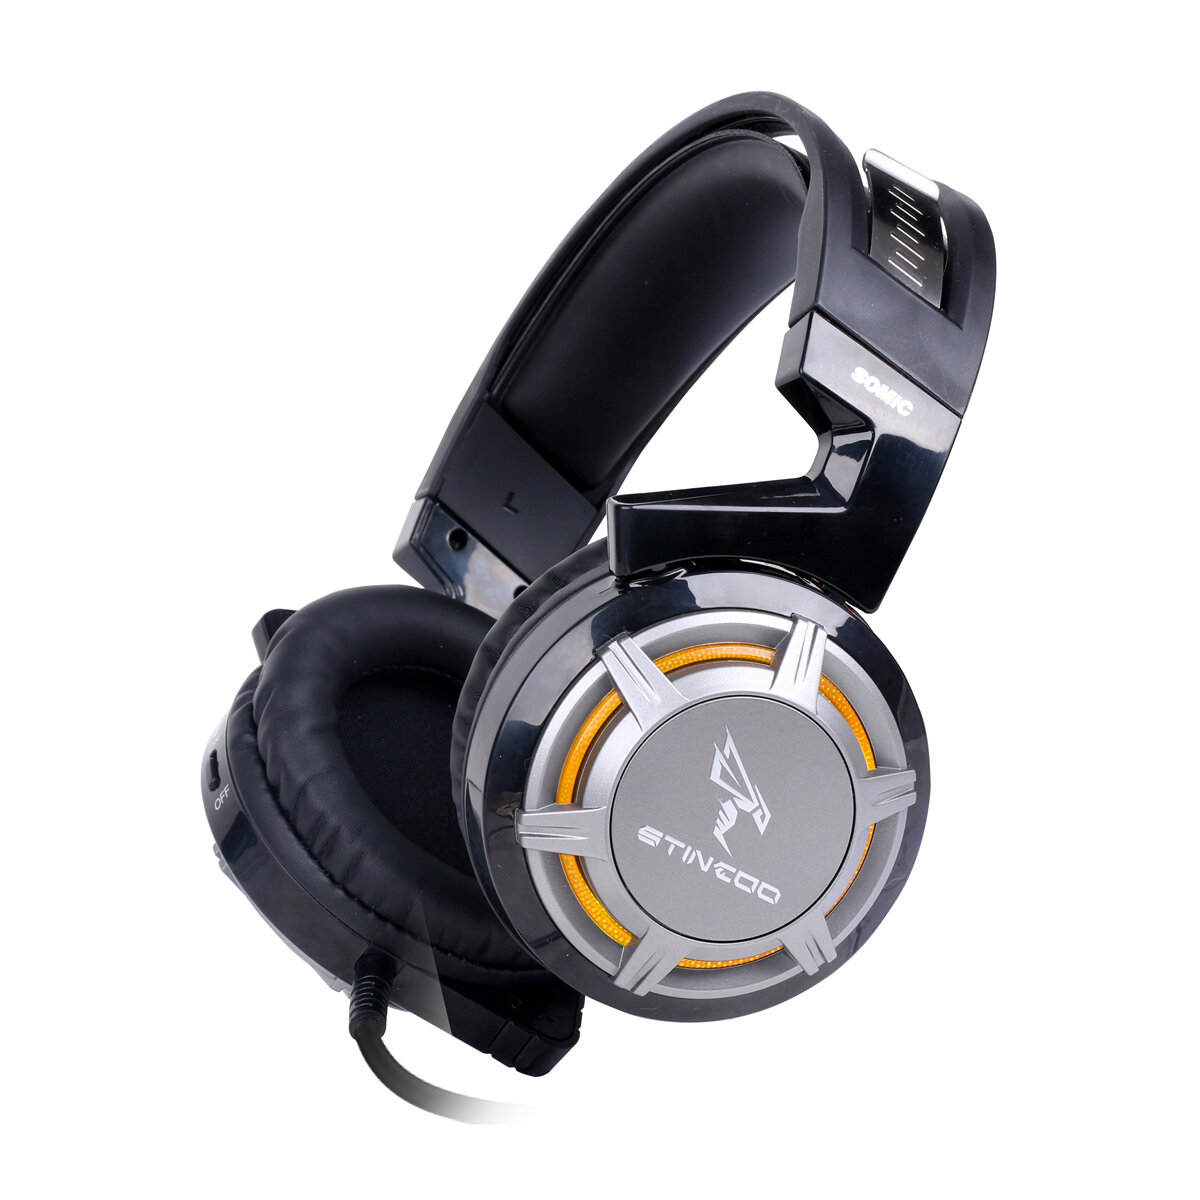 Somic G926 Gaming Headset USB Jack 7.1 Channel 40mm Sound Unit LED Light Lightweight Gaming Headphone with Noise-canceli